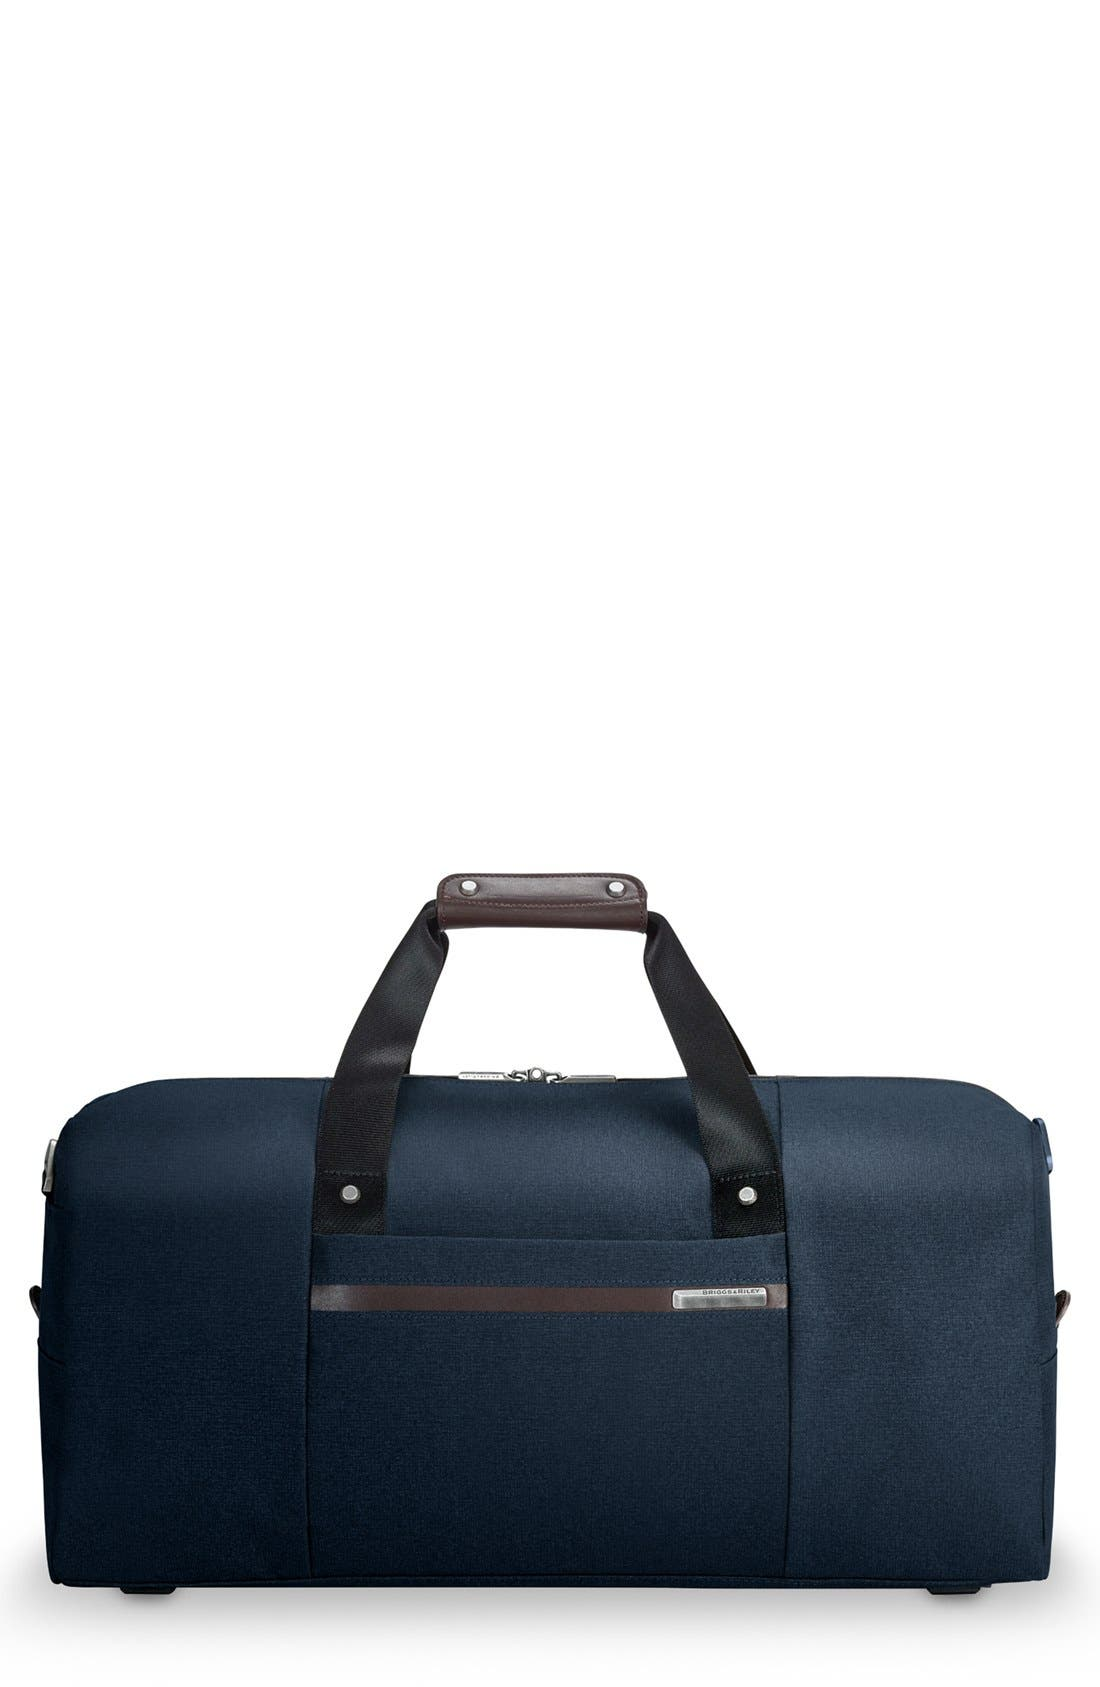 Kinzie Street - Simple Duffel Bag,                             Main thumbnail 1, color,                             Navy Blue